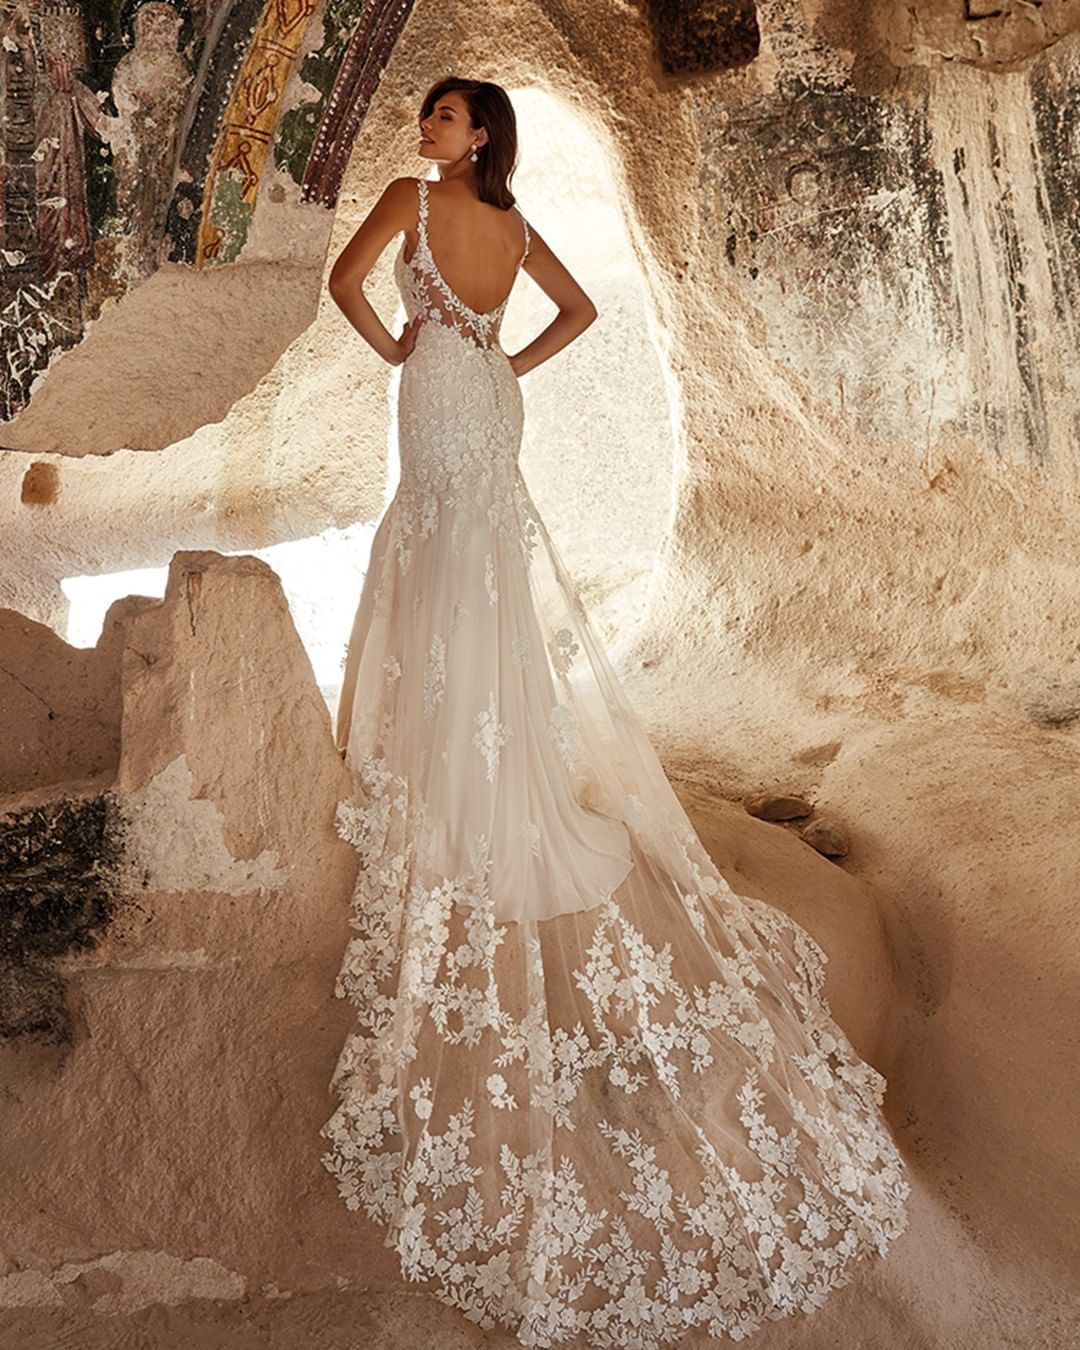 The Dreamiest Delicacy Is Called Sasha Style Dr2033 Eddykdreams To Try Her On Book Your Free Vip Appointme In 2020 Wedding Dresses Dresses Designer Bridal Gowns